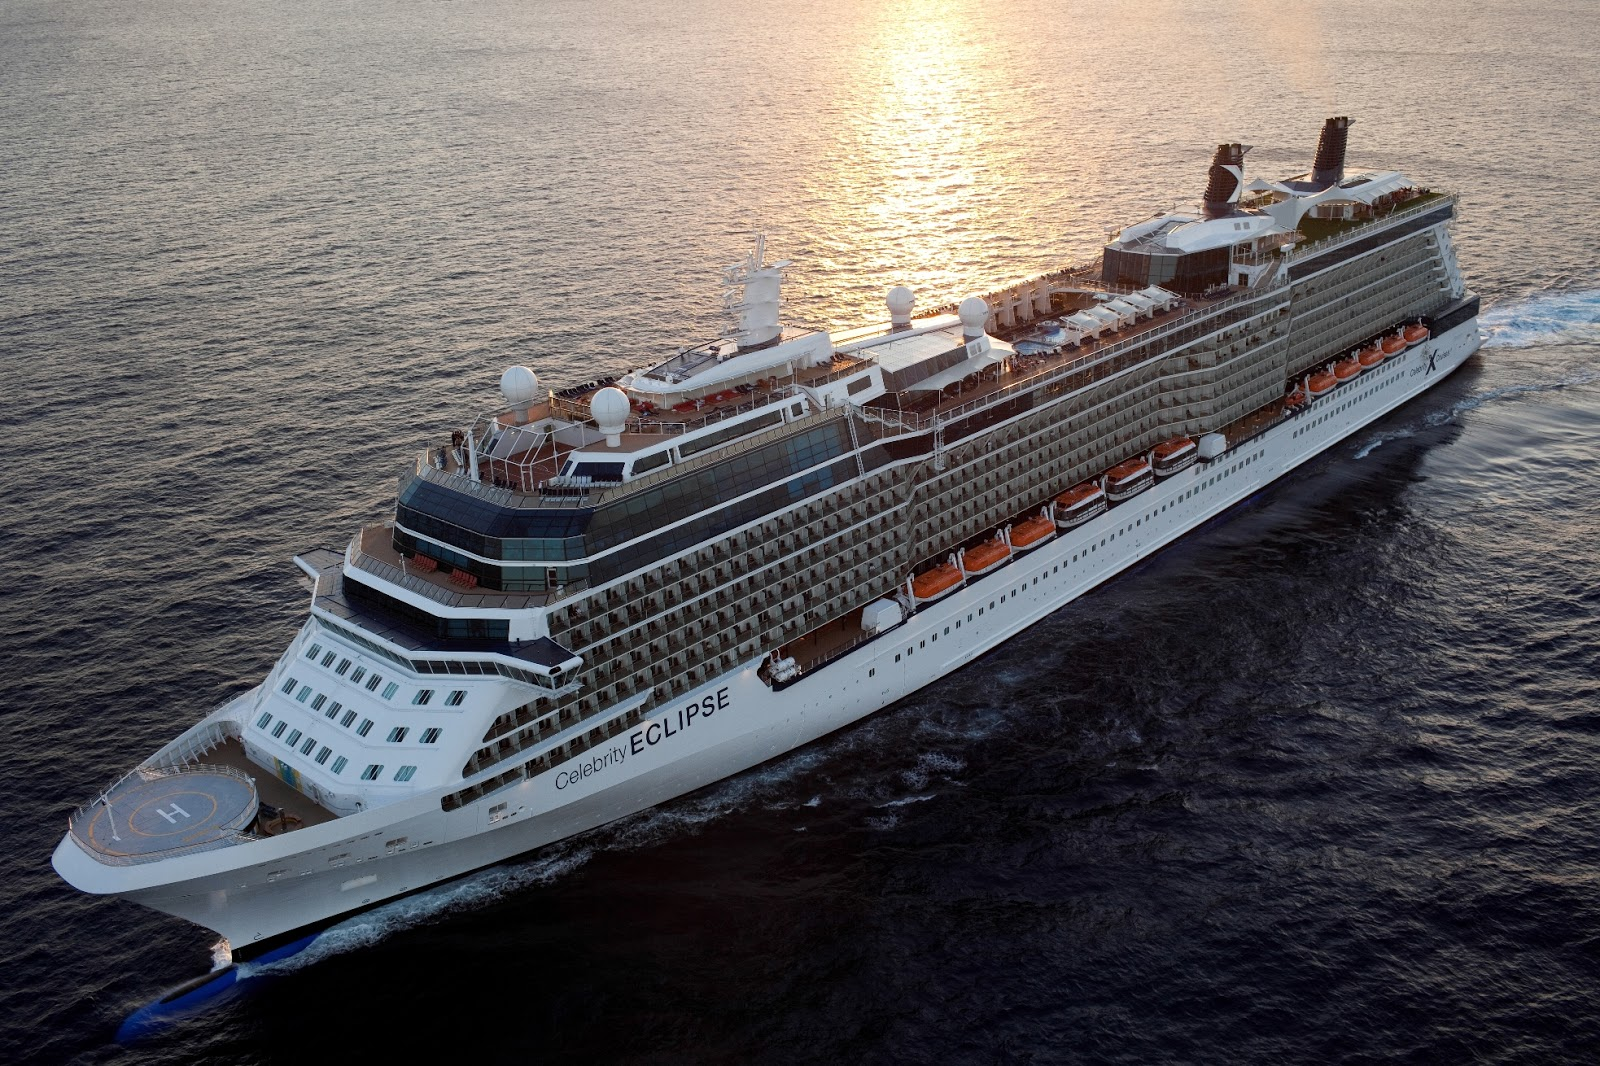 Celebrity Cruises - Up to $1700 Onboard Credit & more